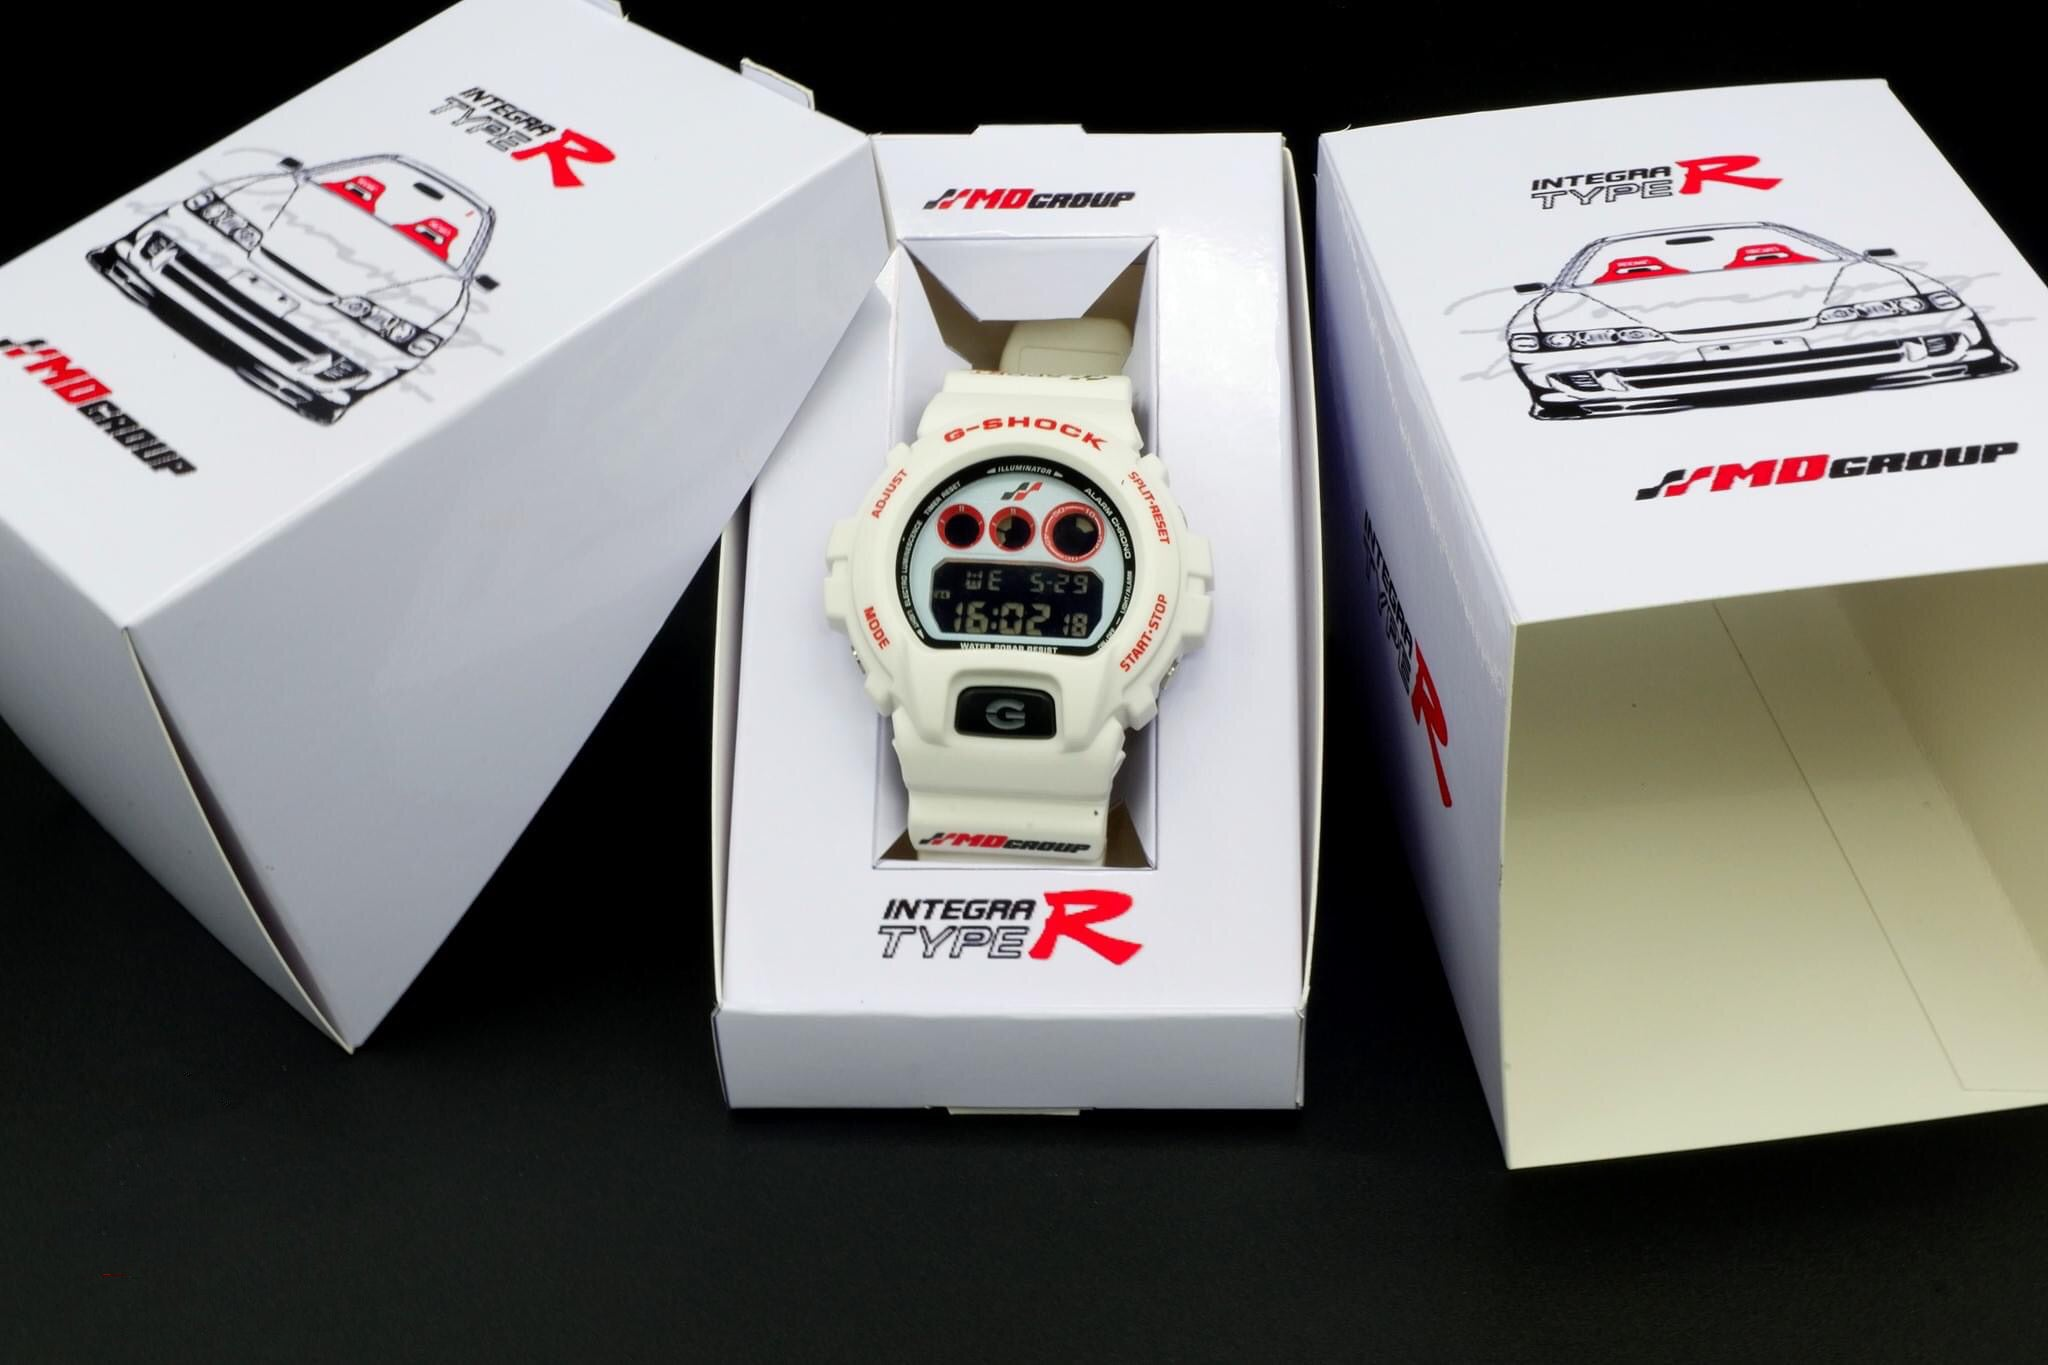 【熱賣】Intergra Type-R款Gshock